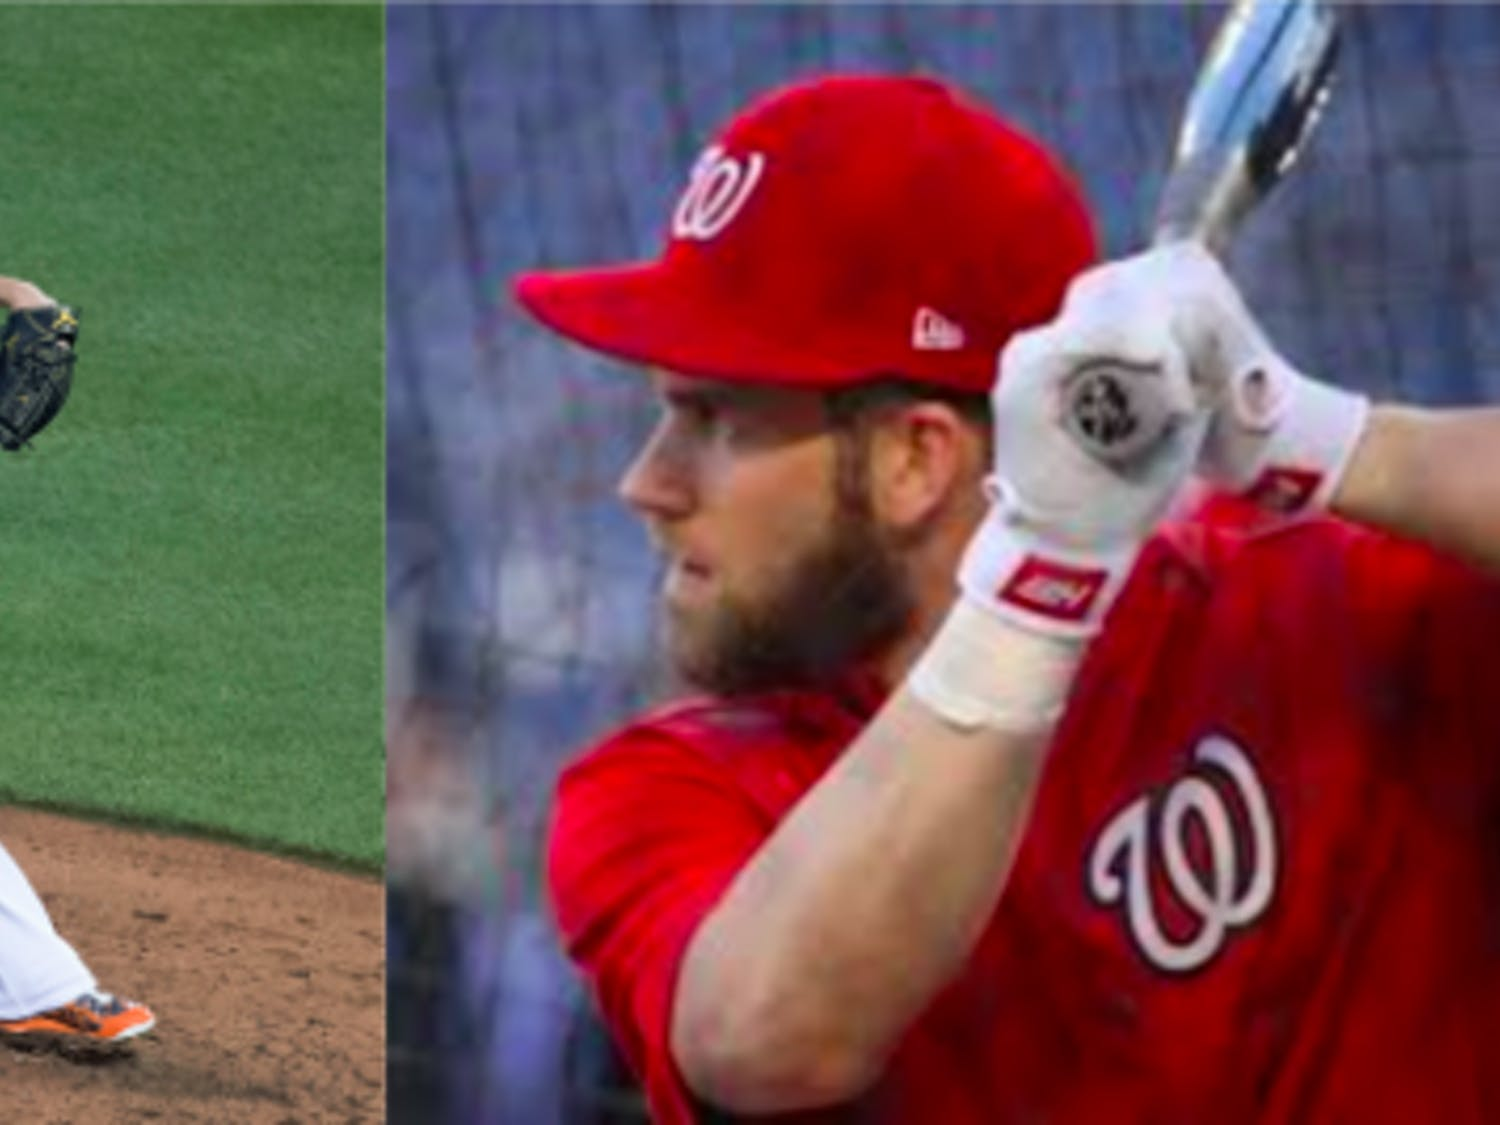 Even after a hot start to the season,Baltimore's Dylan Bundy (left) is a good sell-high candidate, while Bryce Harper's (right) body of work means he should continue to lead your fantasy team going forward.